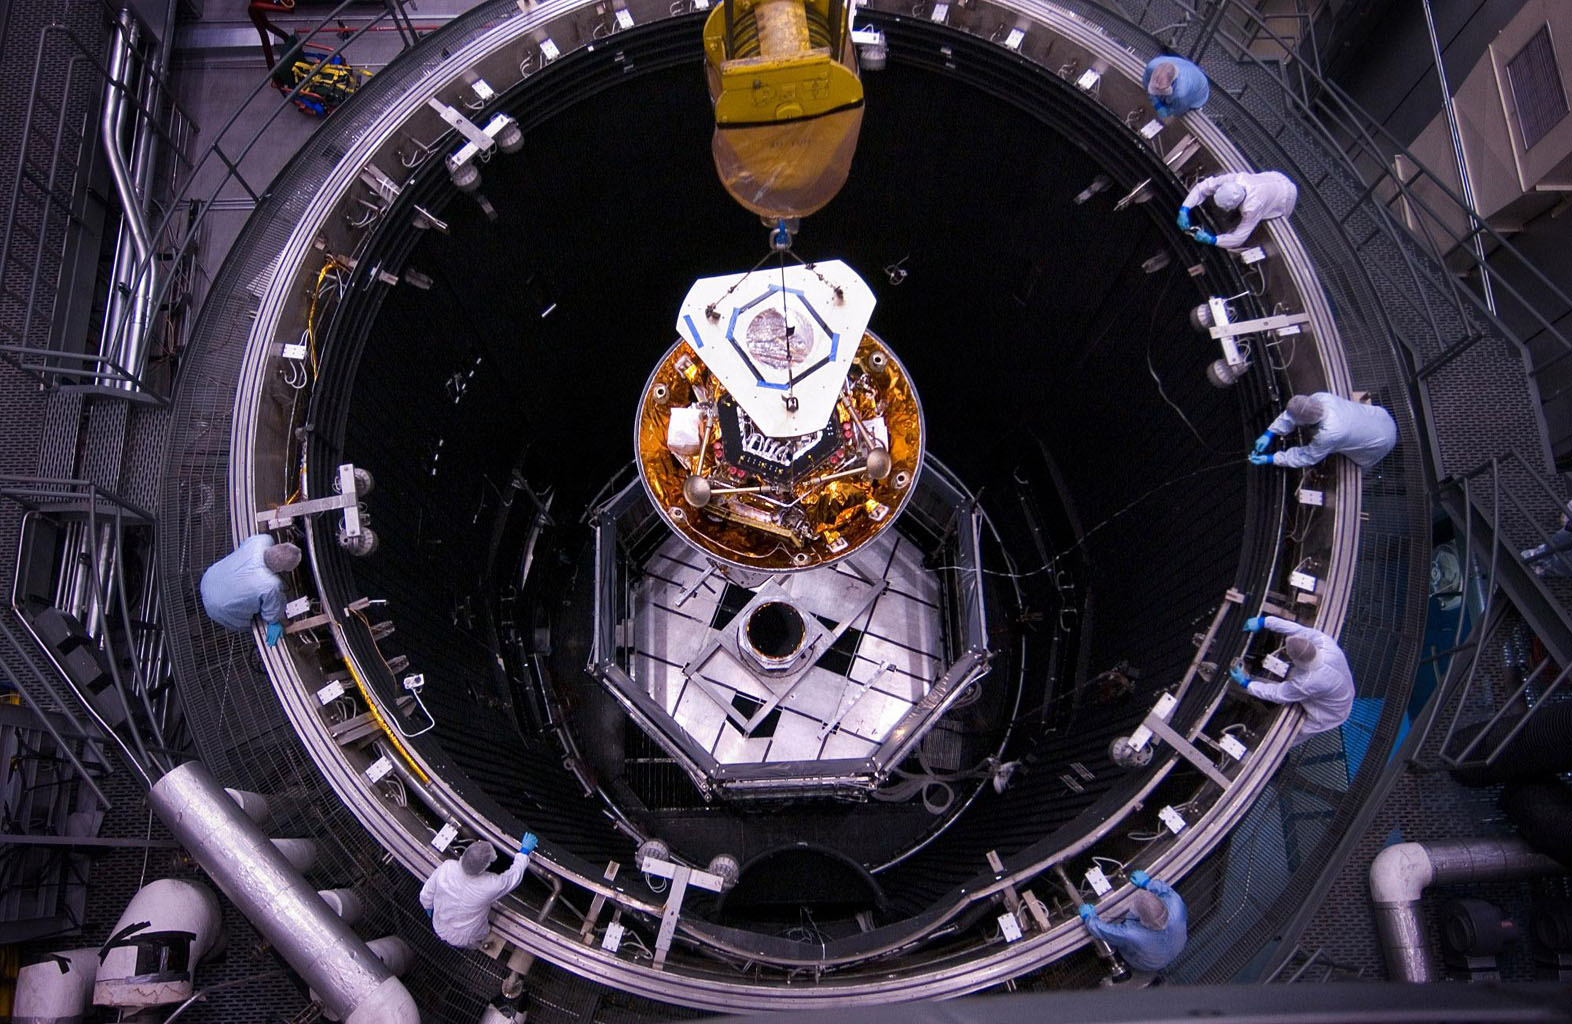 NASA's Phoenix Mars Lander was lowered into a thermal vacuum chamber at Lockheed Martin Space Systems, Denver, in December 2006